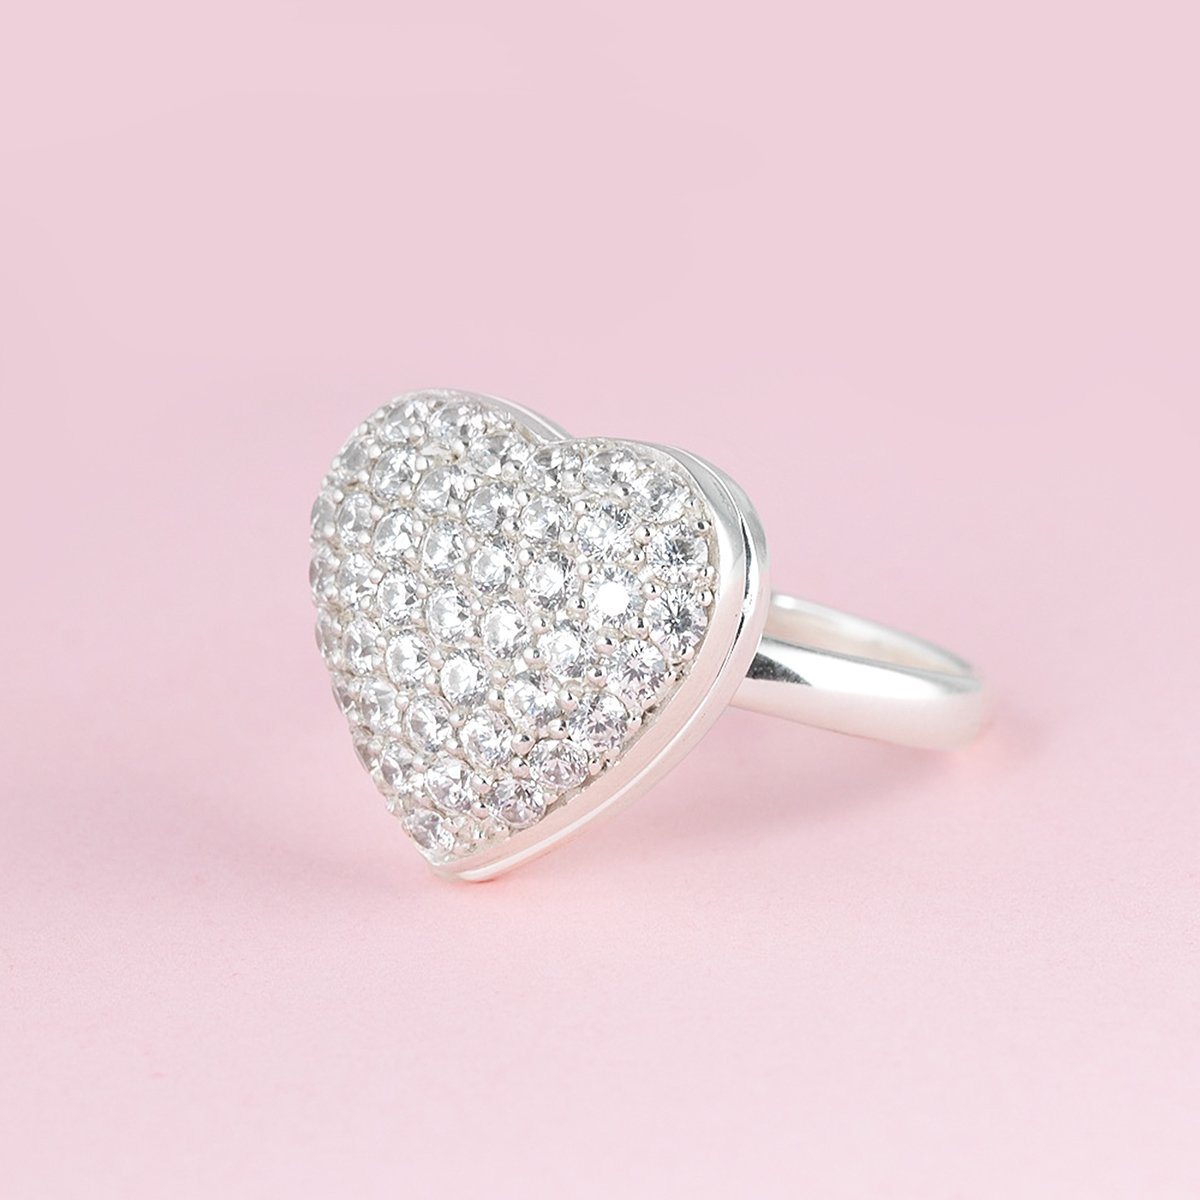 Product title: Dazzle Locket Ring, product type: Locket Ring